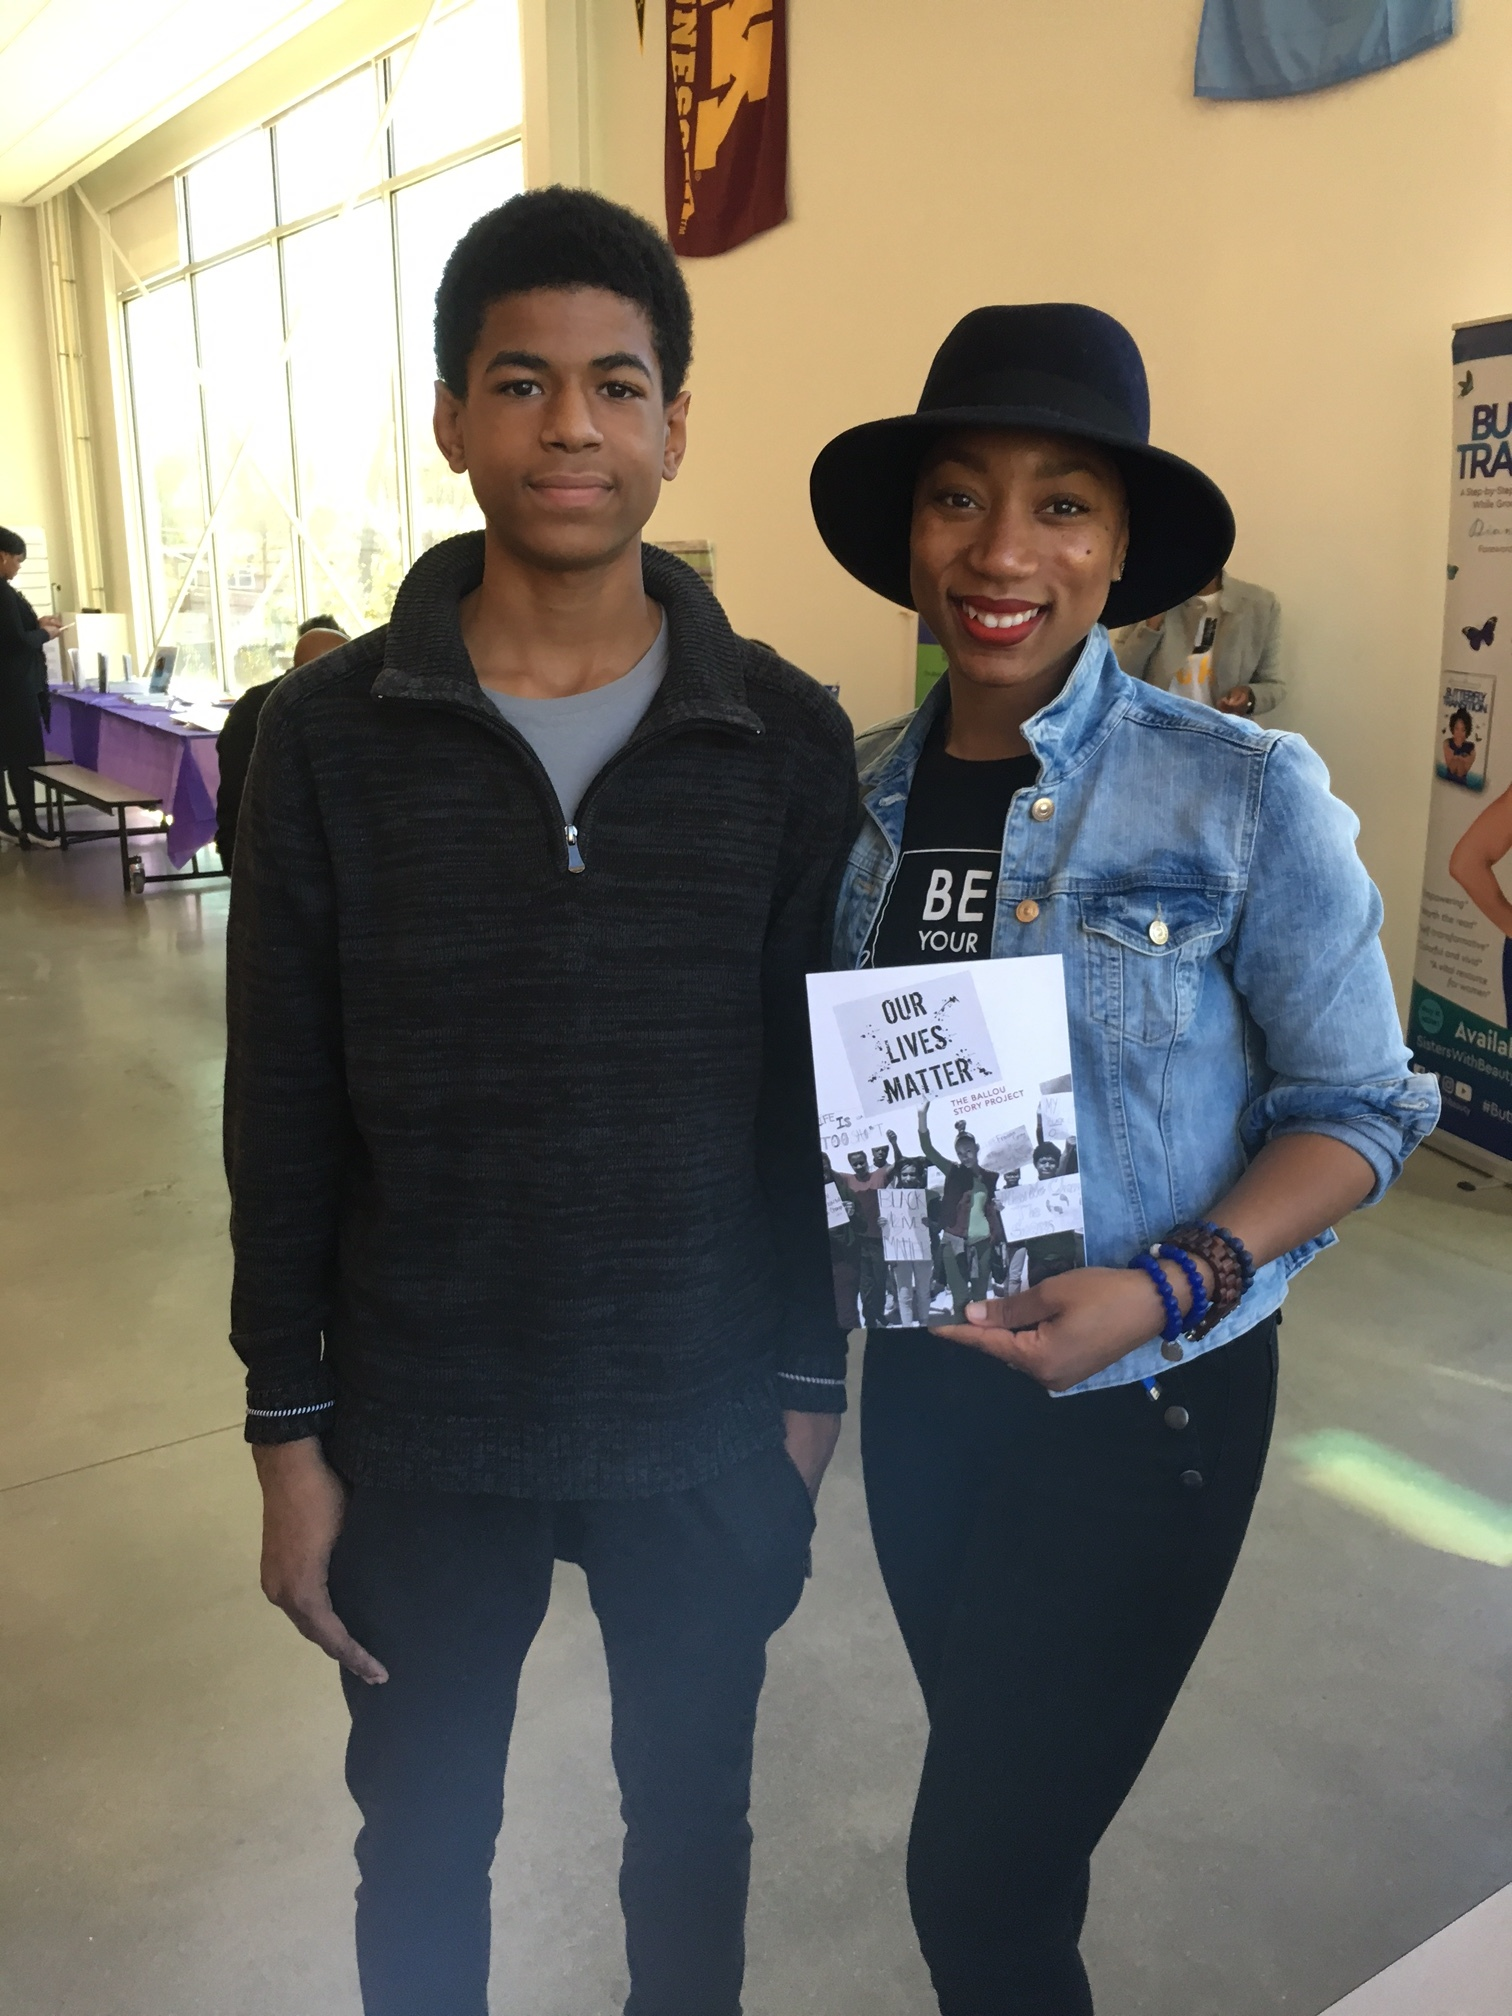 In other  Ballou Story Project  news, three-time author Carl represented at East of the River Book Festival, where all Shout Mouse books were featured for sale.